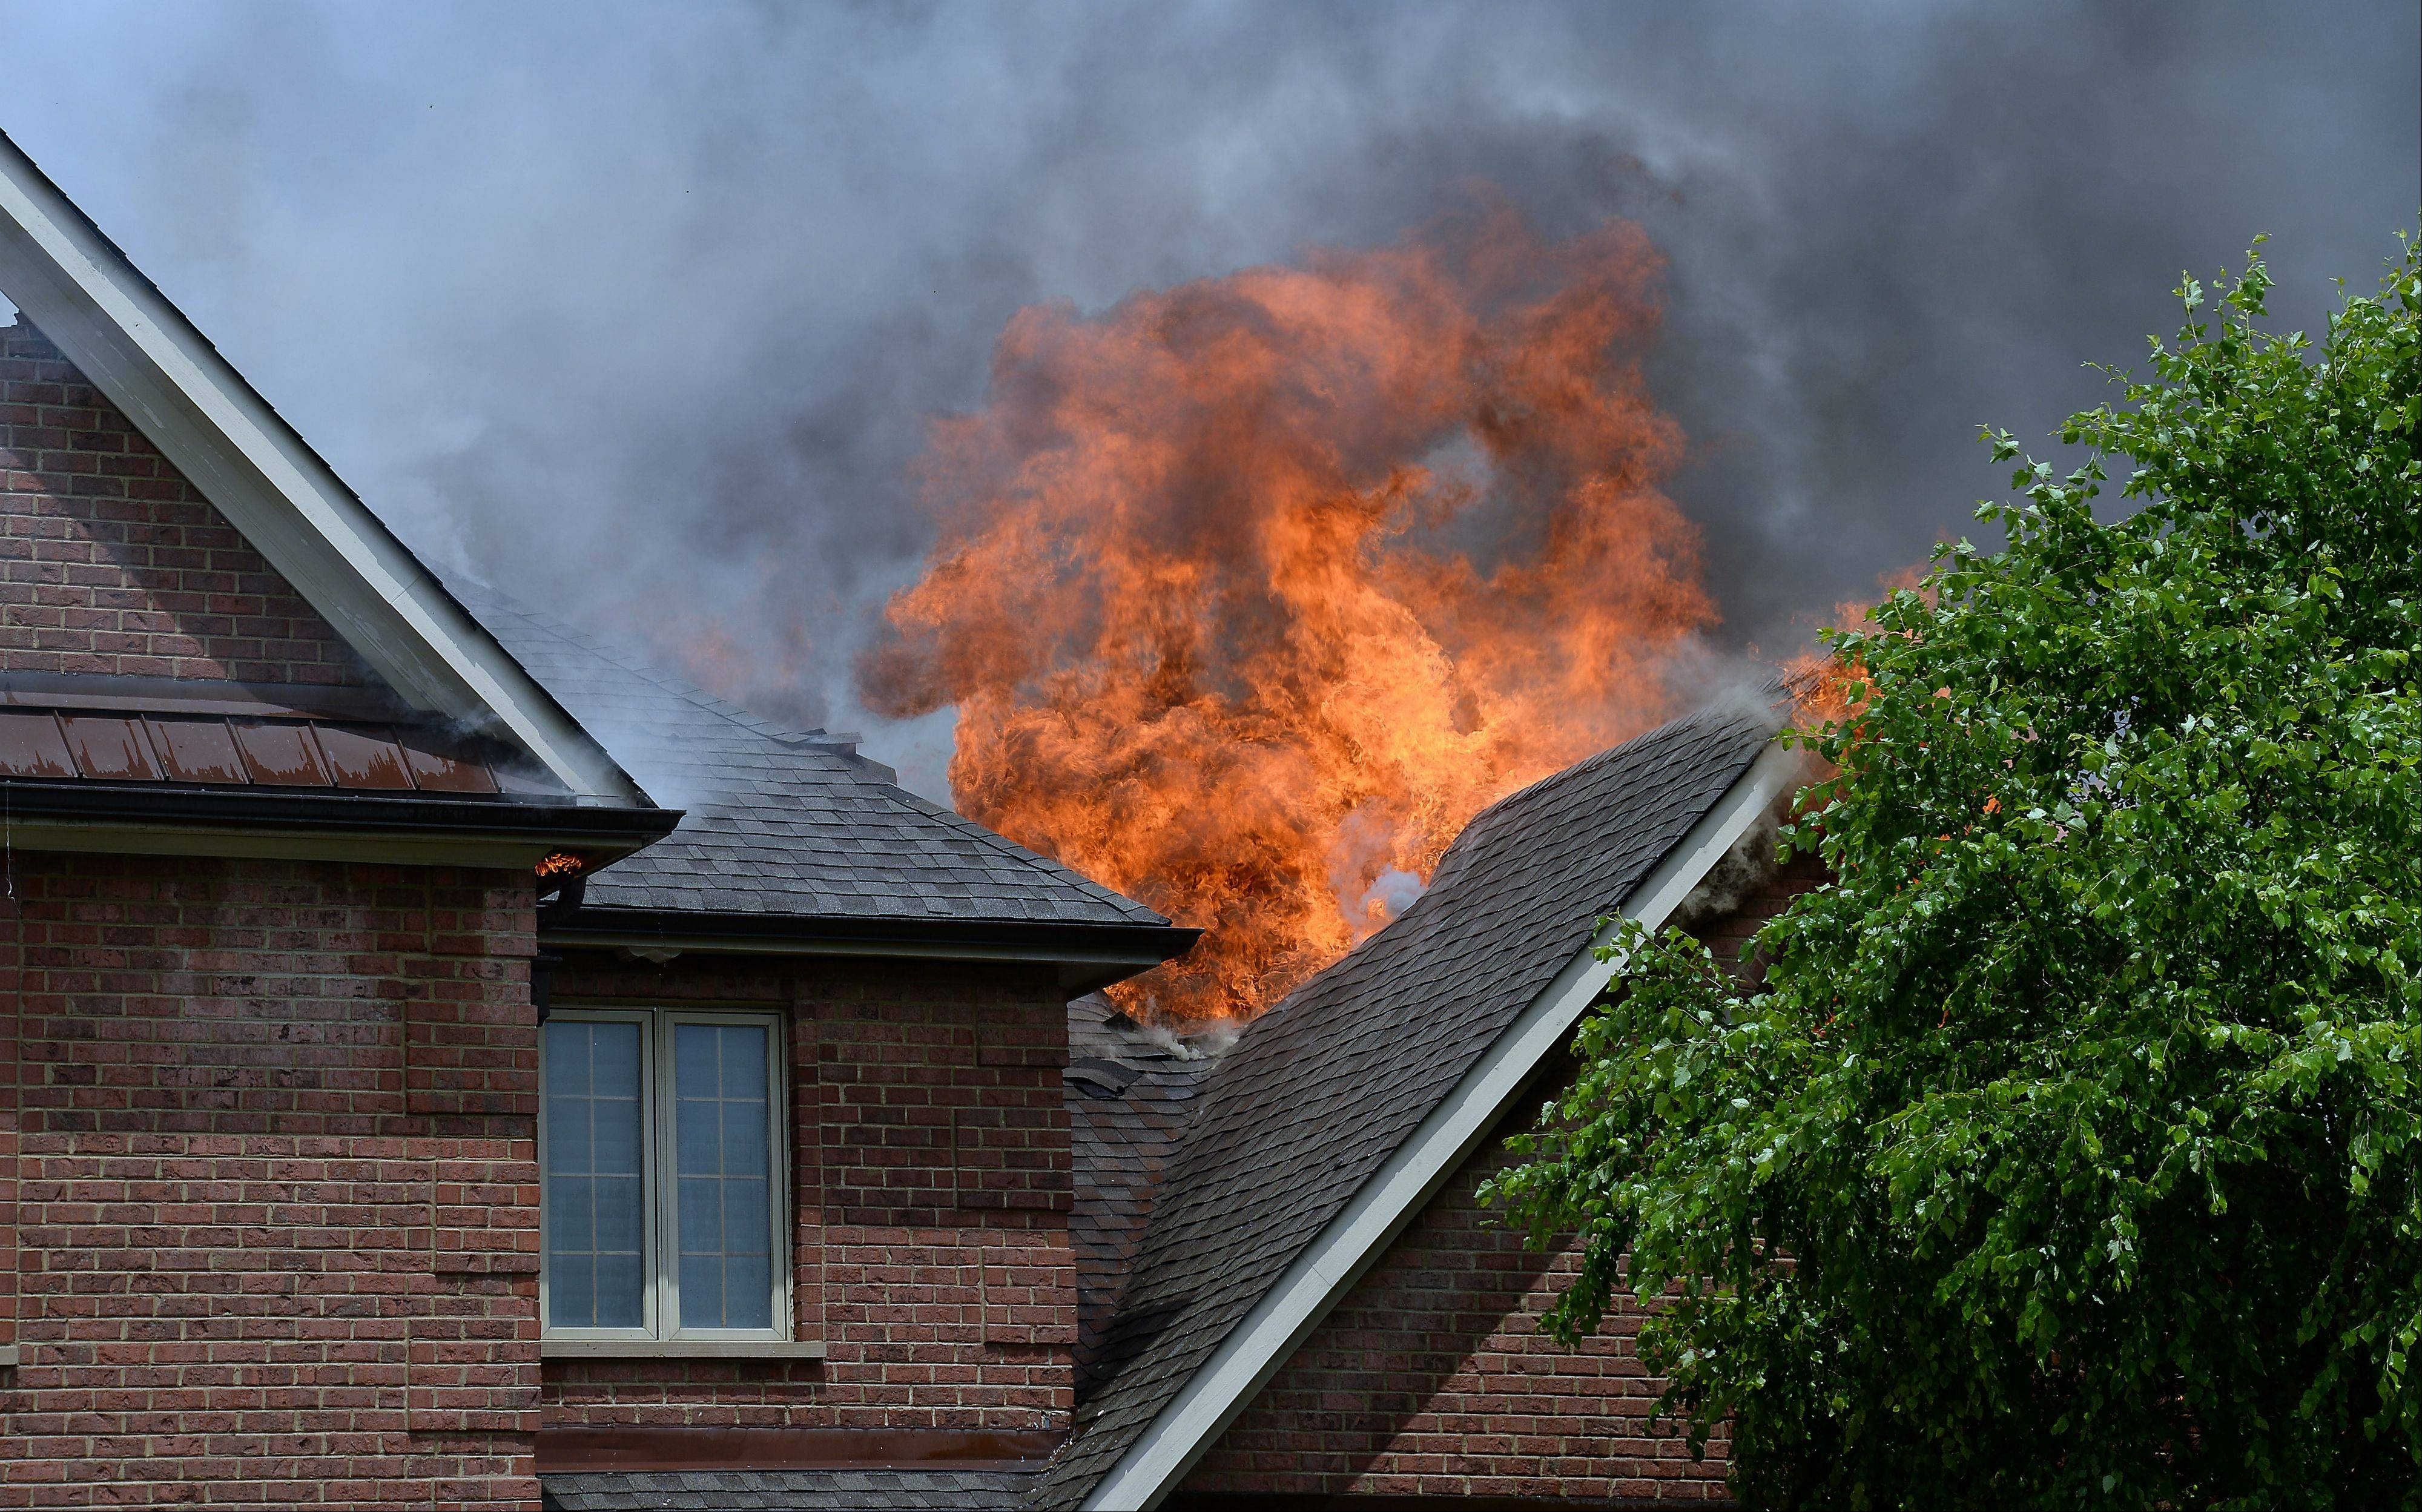 Flames shoot up from behind the home.